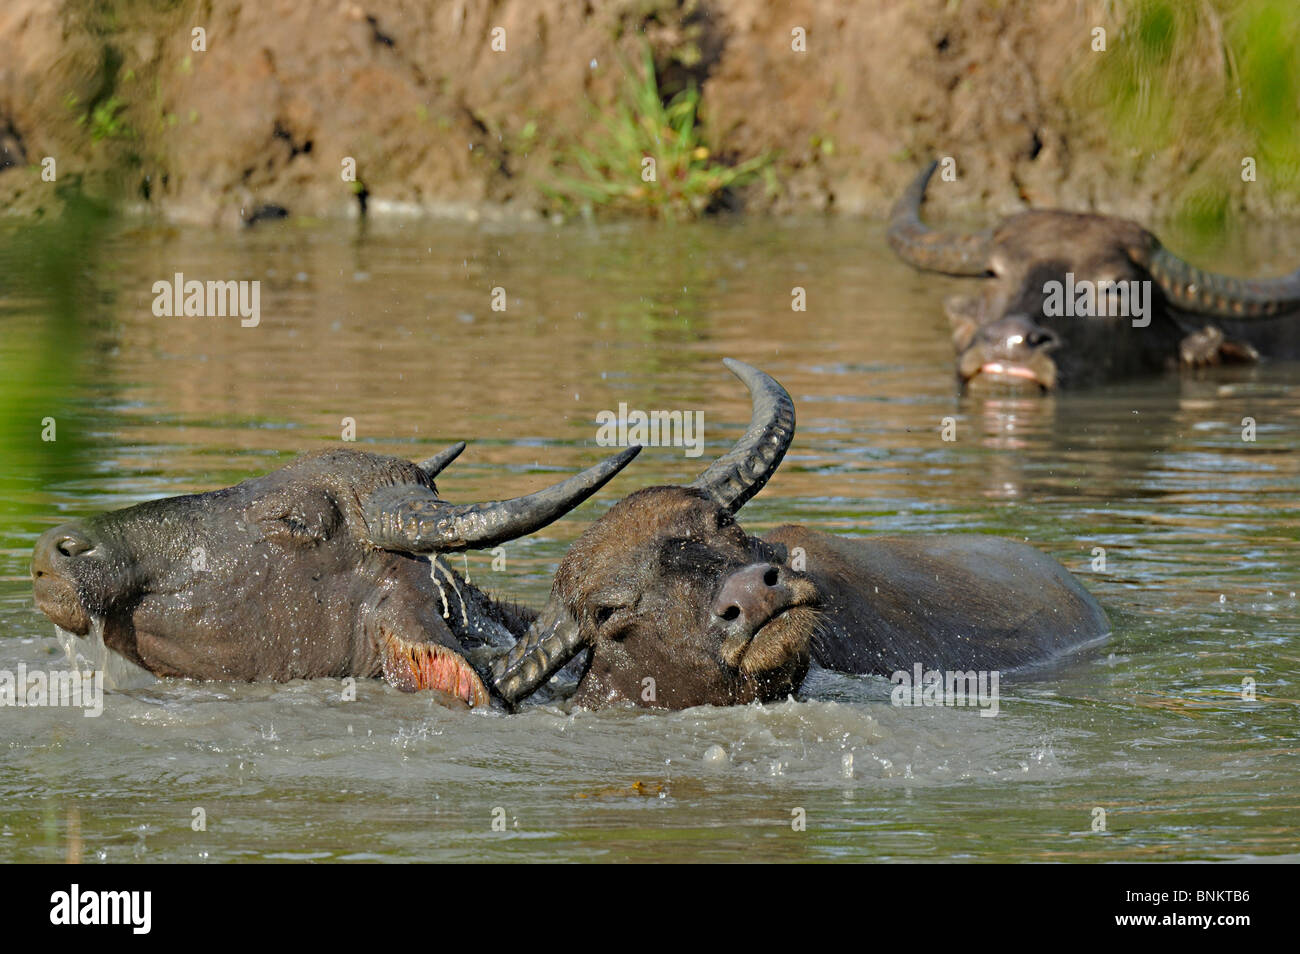 Wild water buffalos playing in Yala or Ruhuna National Park in Sri Lanka - Stock Image